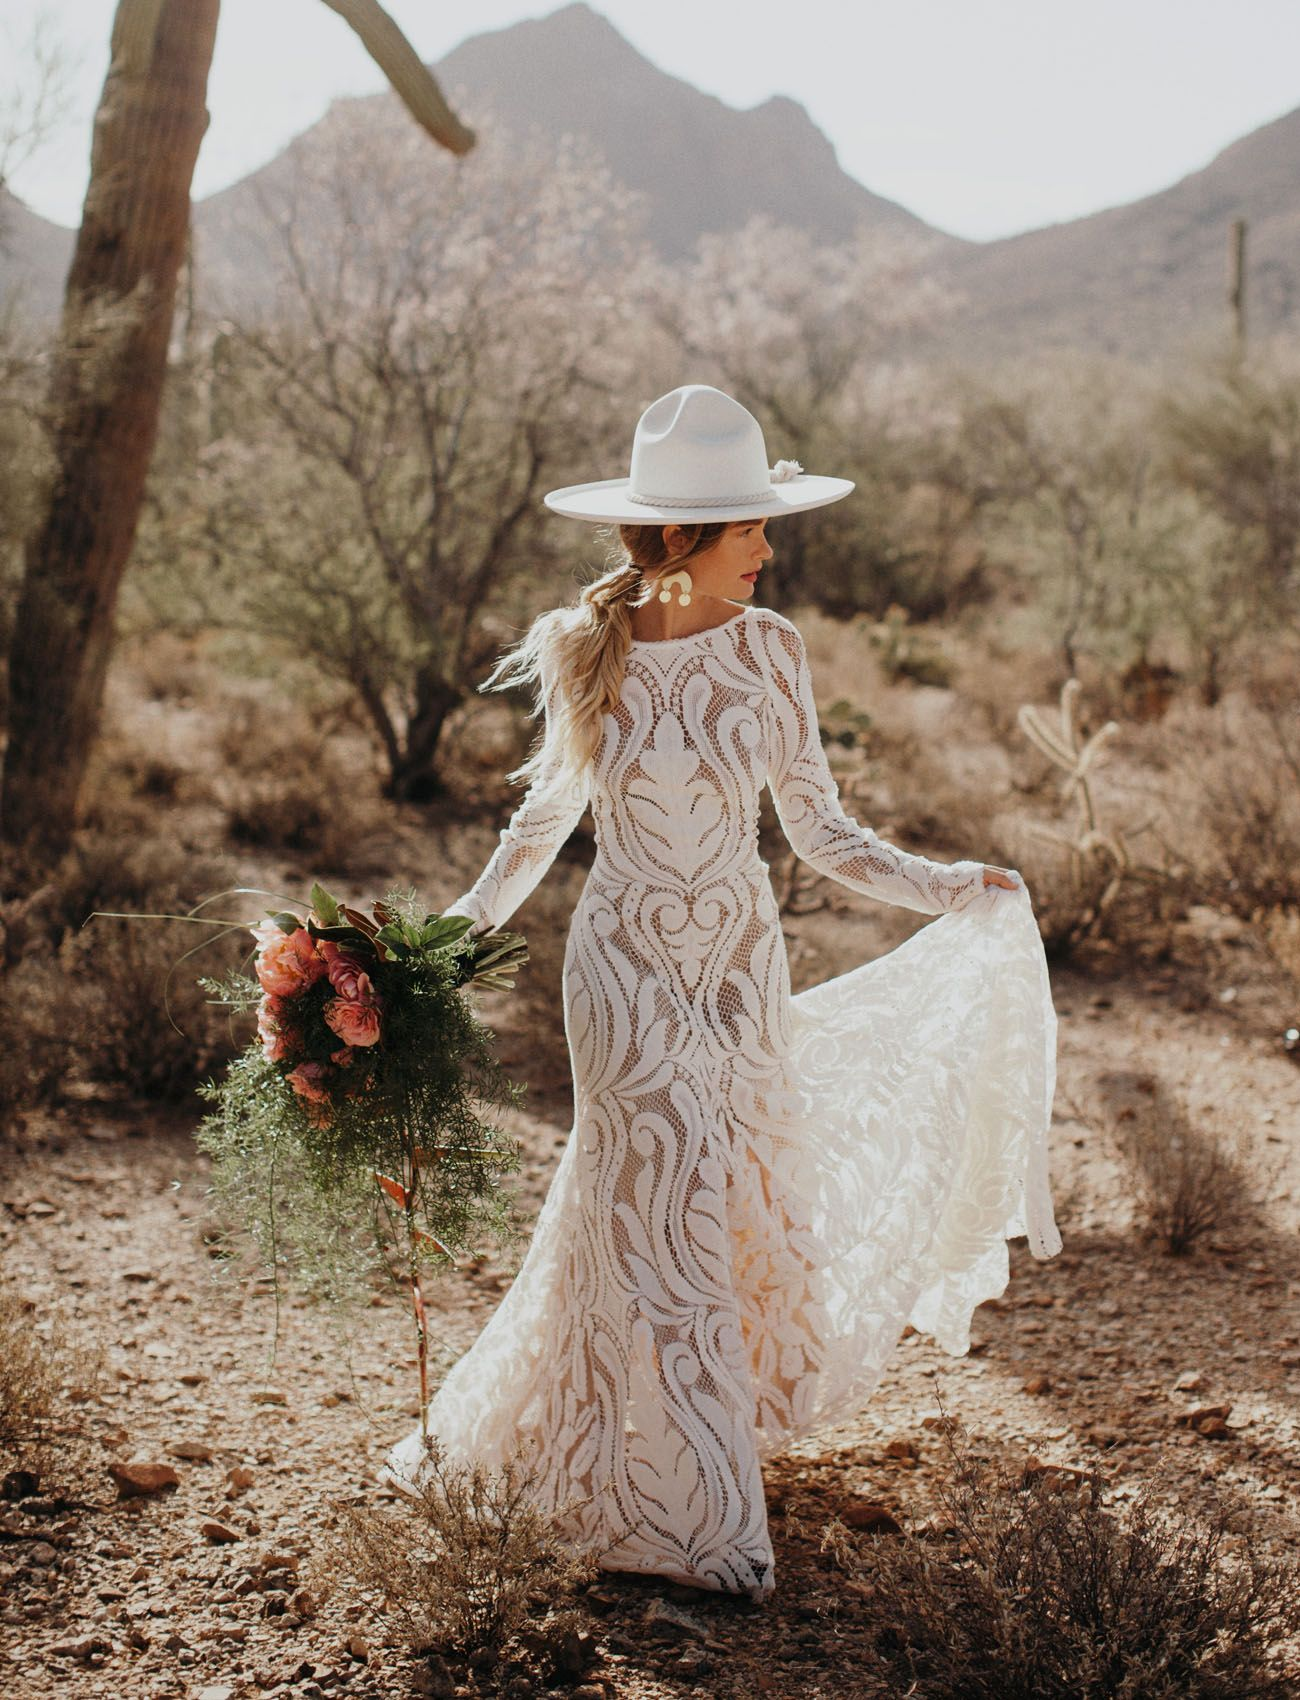 Hipster wedding dresses  Bridal Trend with Hats  Boho Hipster Bride with Casey Quigley